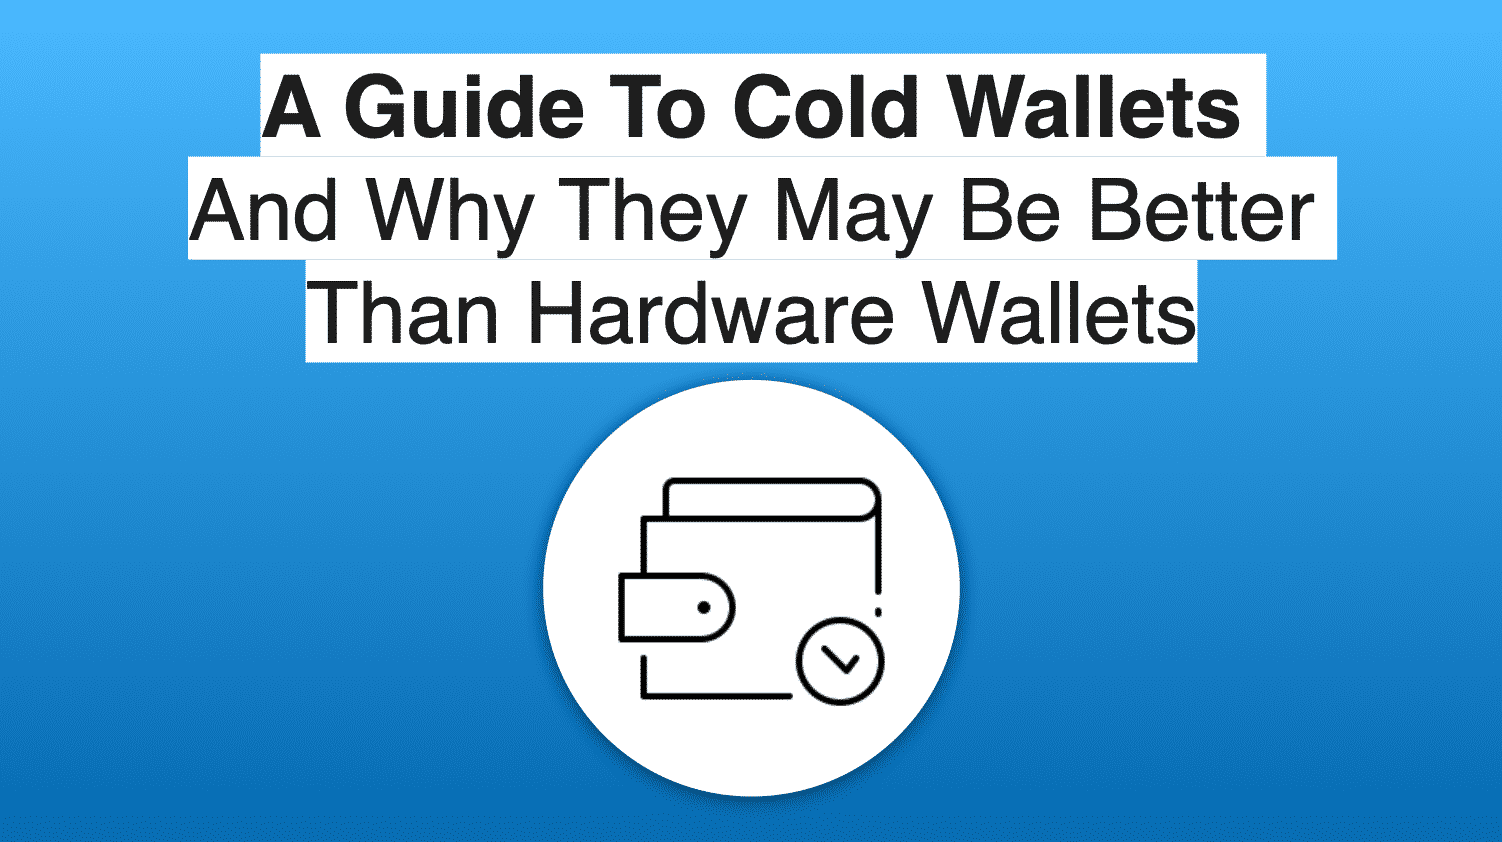 A Guide To Cold Wallets And Why They May Be Better Than Hardware Wallets